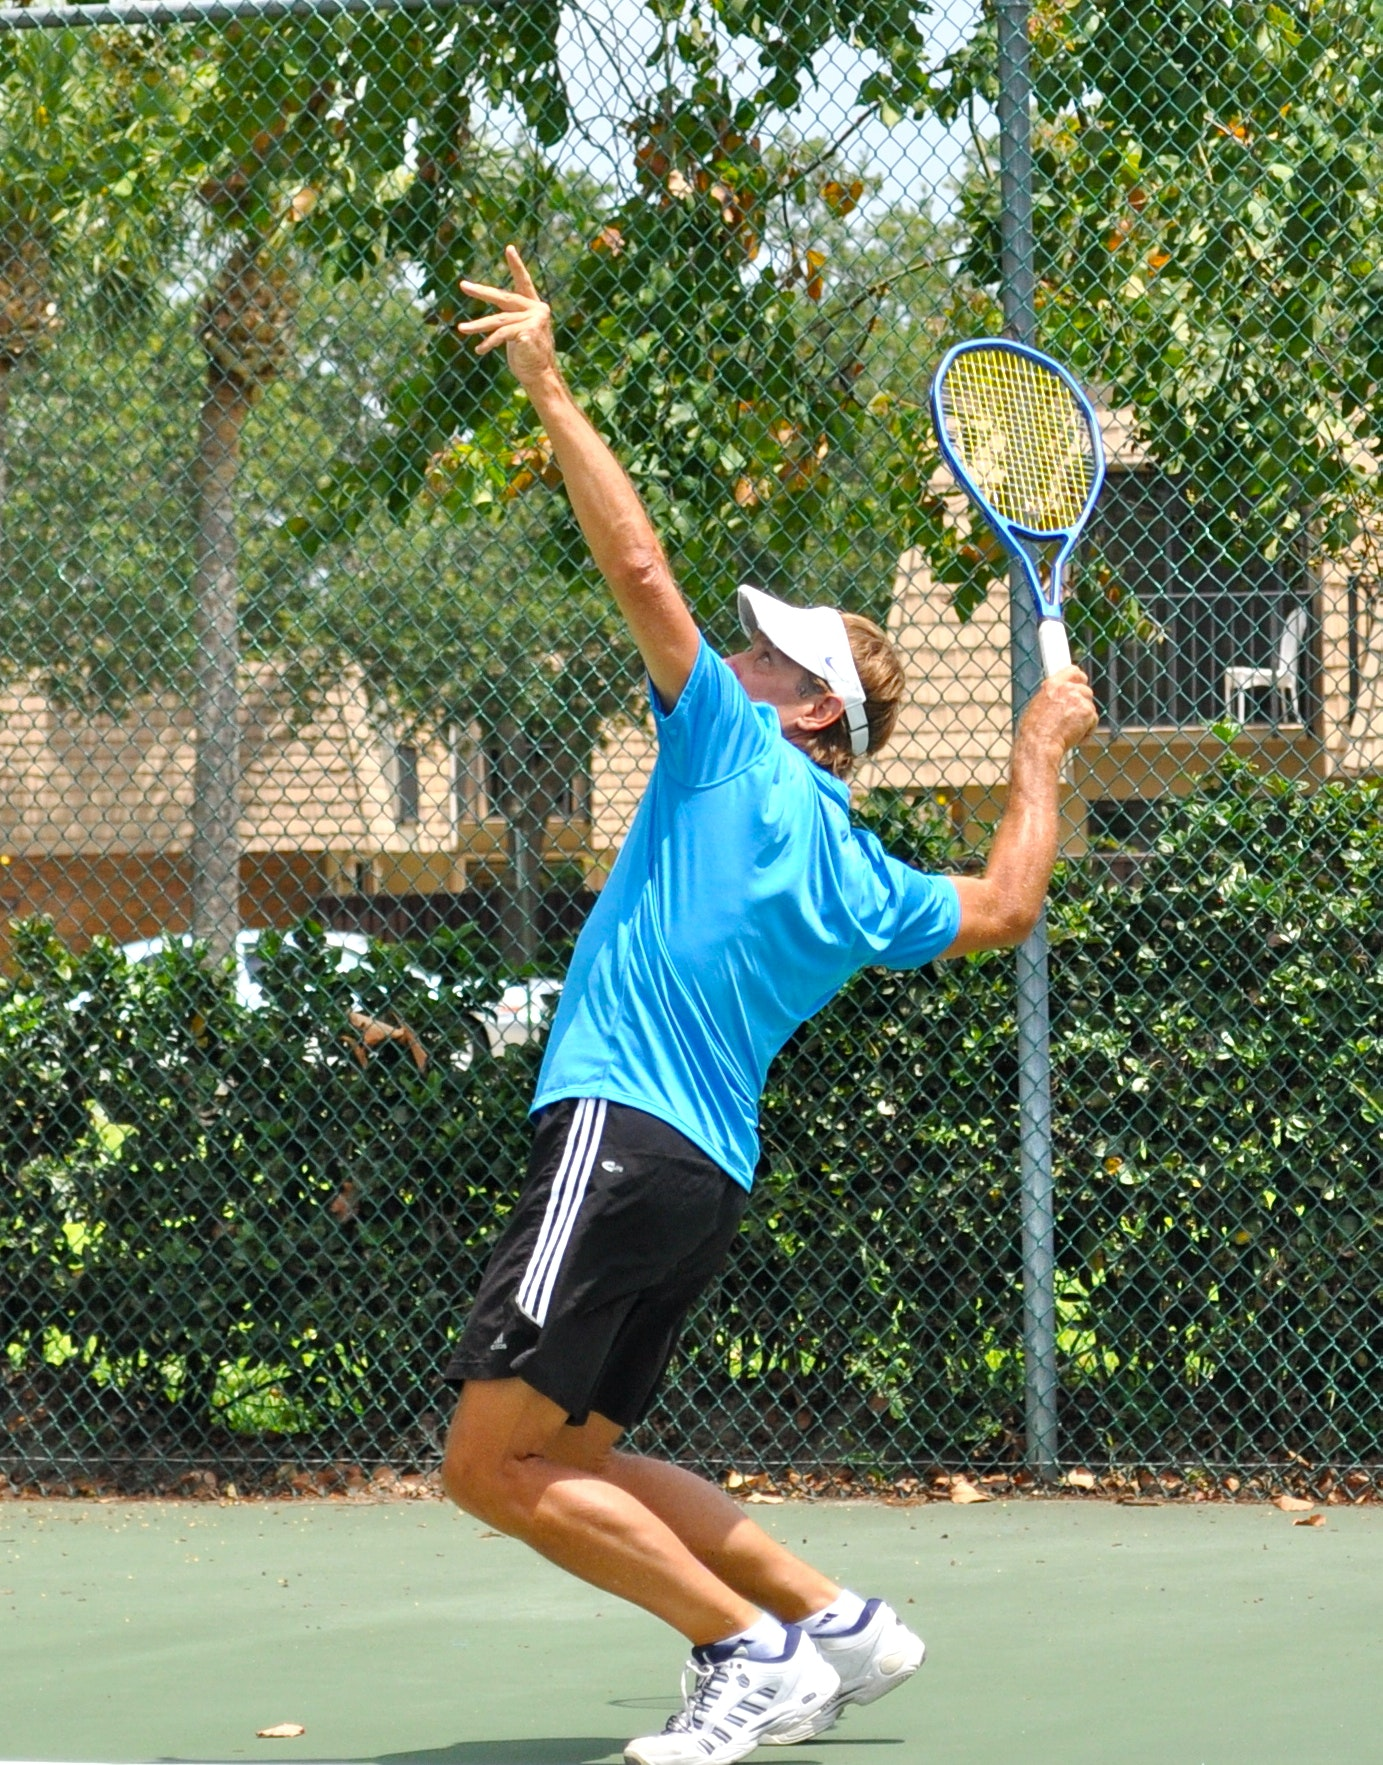 Dennis G. teaches tennis lessons in Palm Beach Gardens, FL